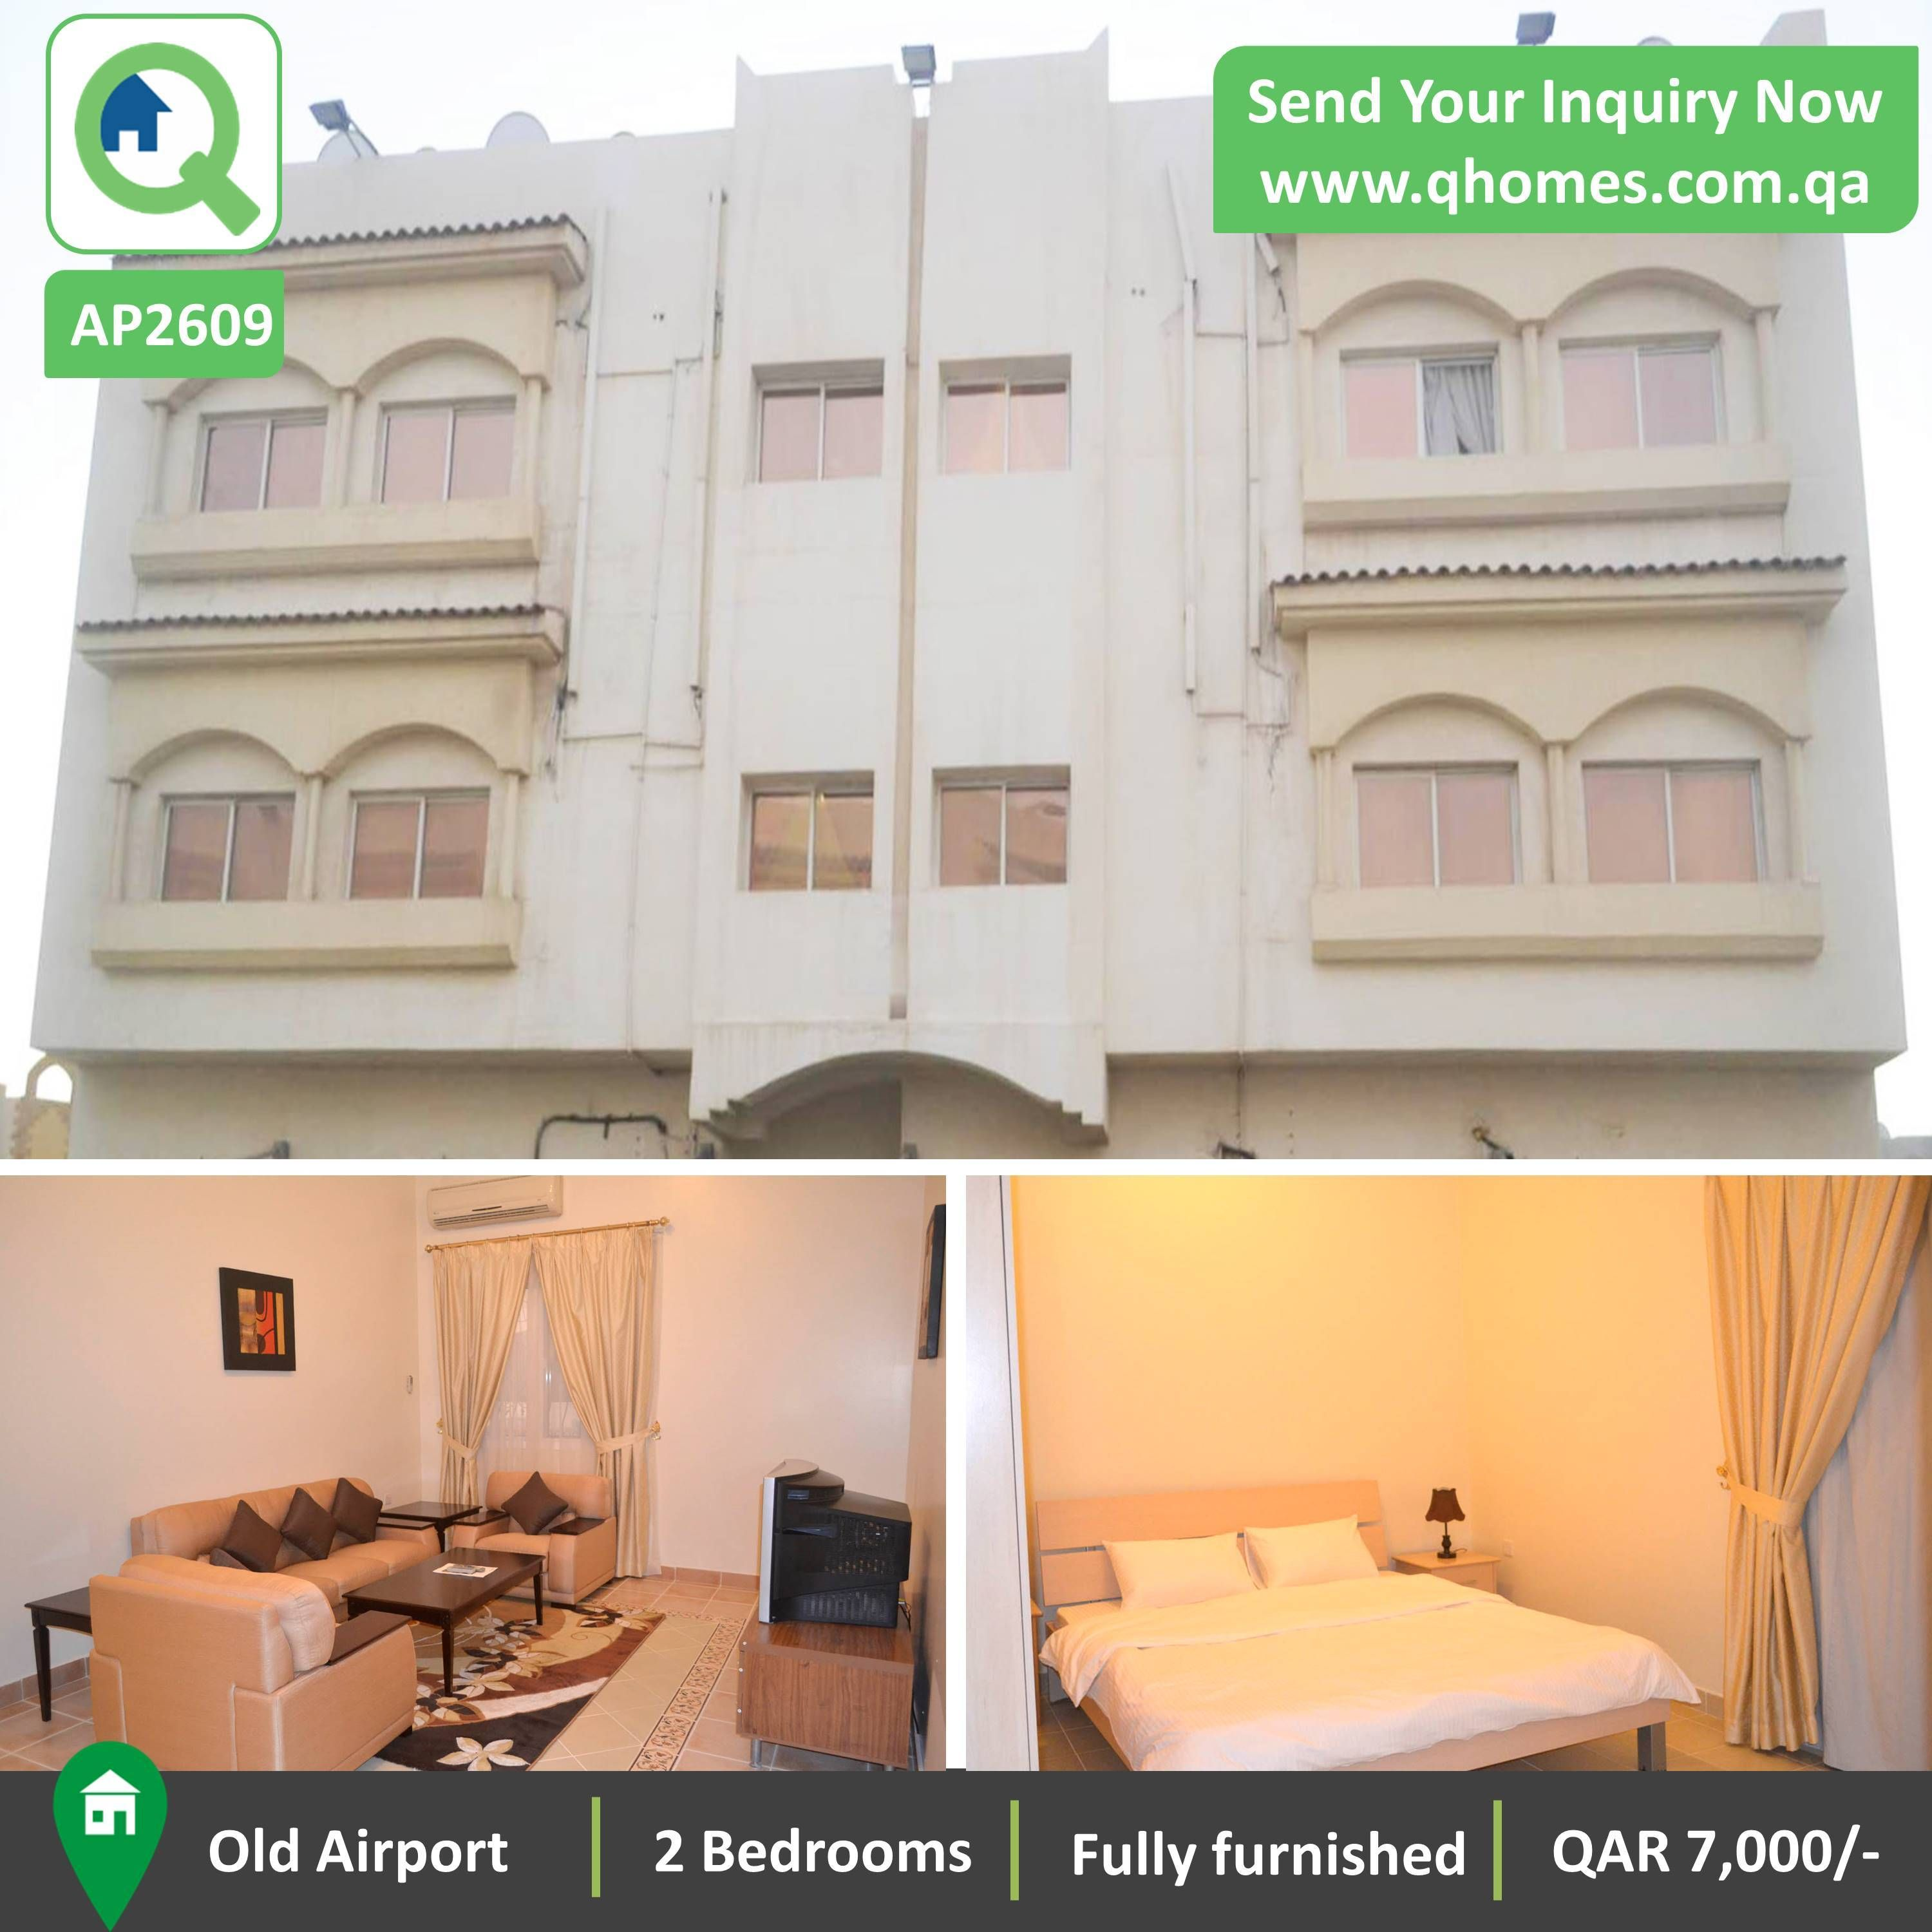 2 Bedroom Apartments For Rent Manhattan: Apartment For Rent In Qatar: Fully Furnished 2 Bedrooms